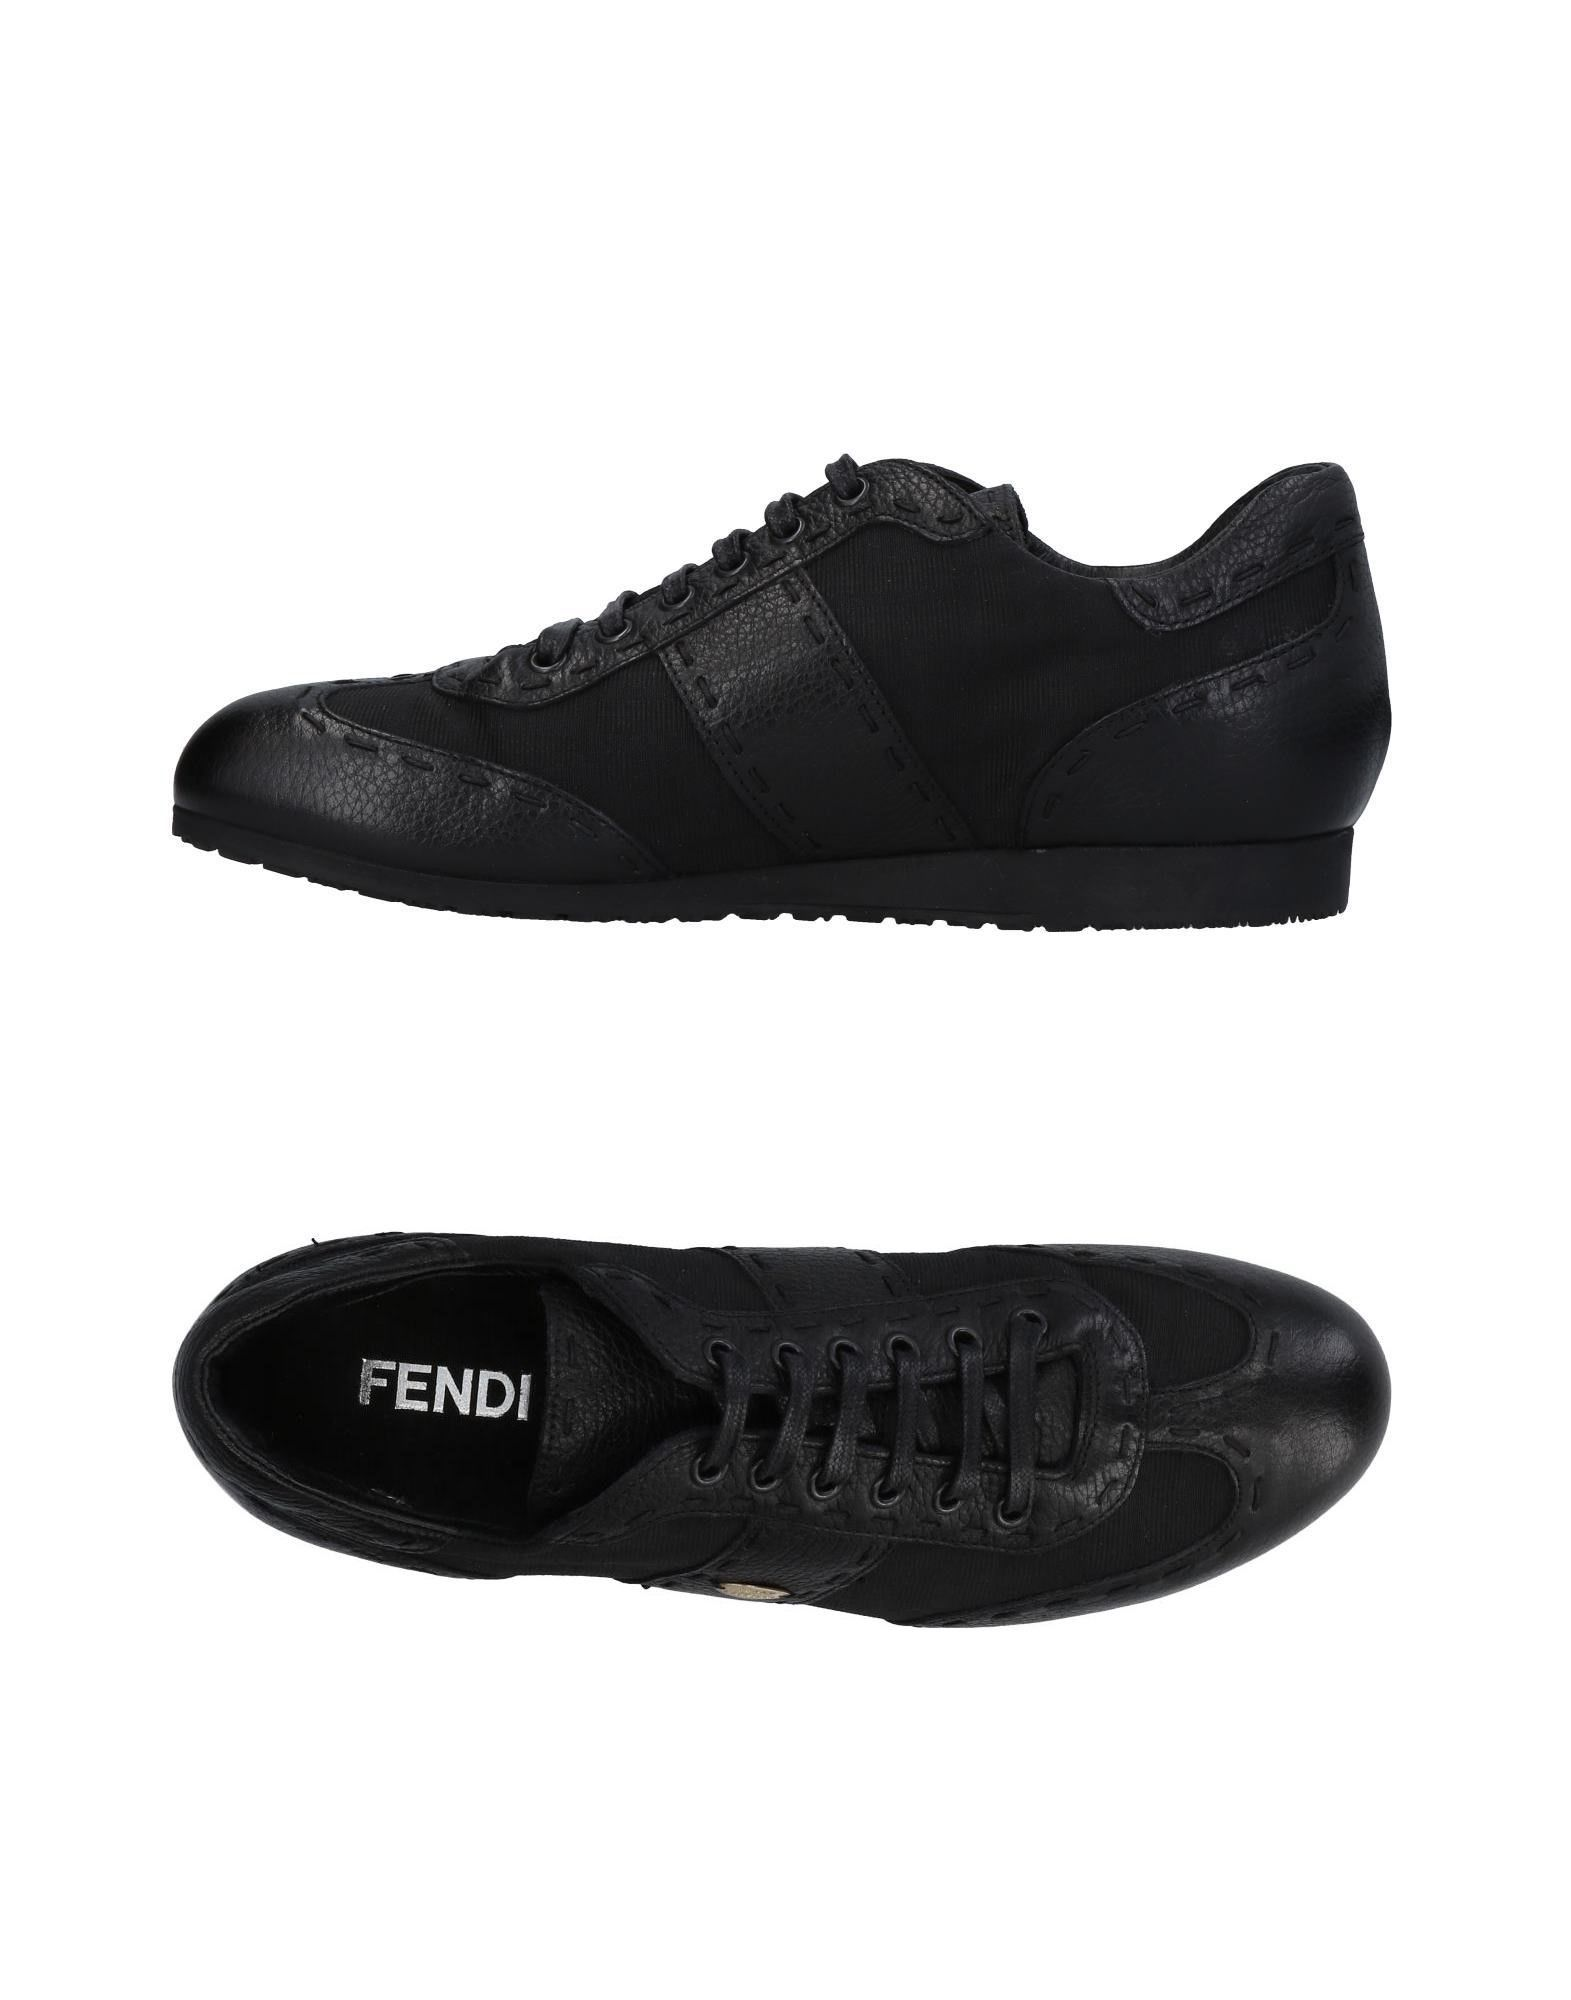 49f68284c13 Sneakers Fendi Homme Sneakers Fendi sur - seaviewweligama.com